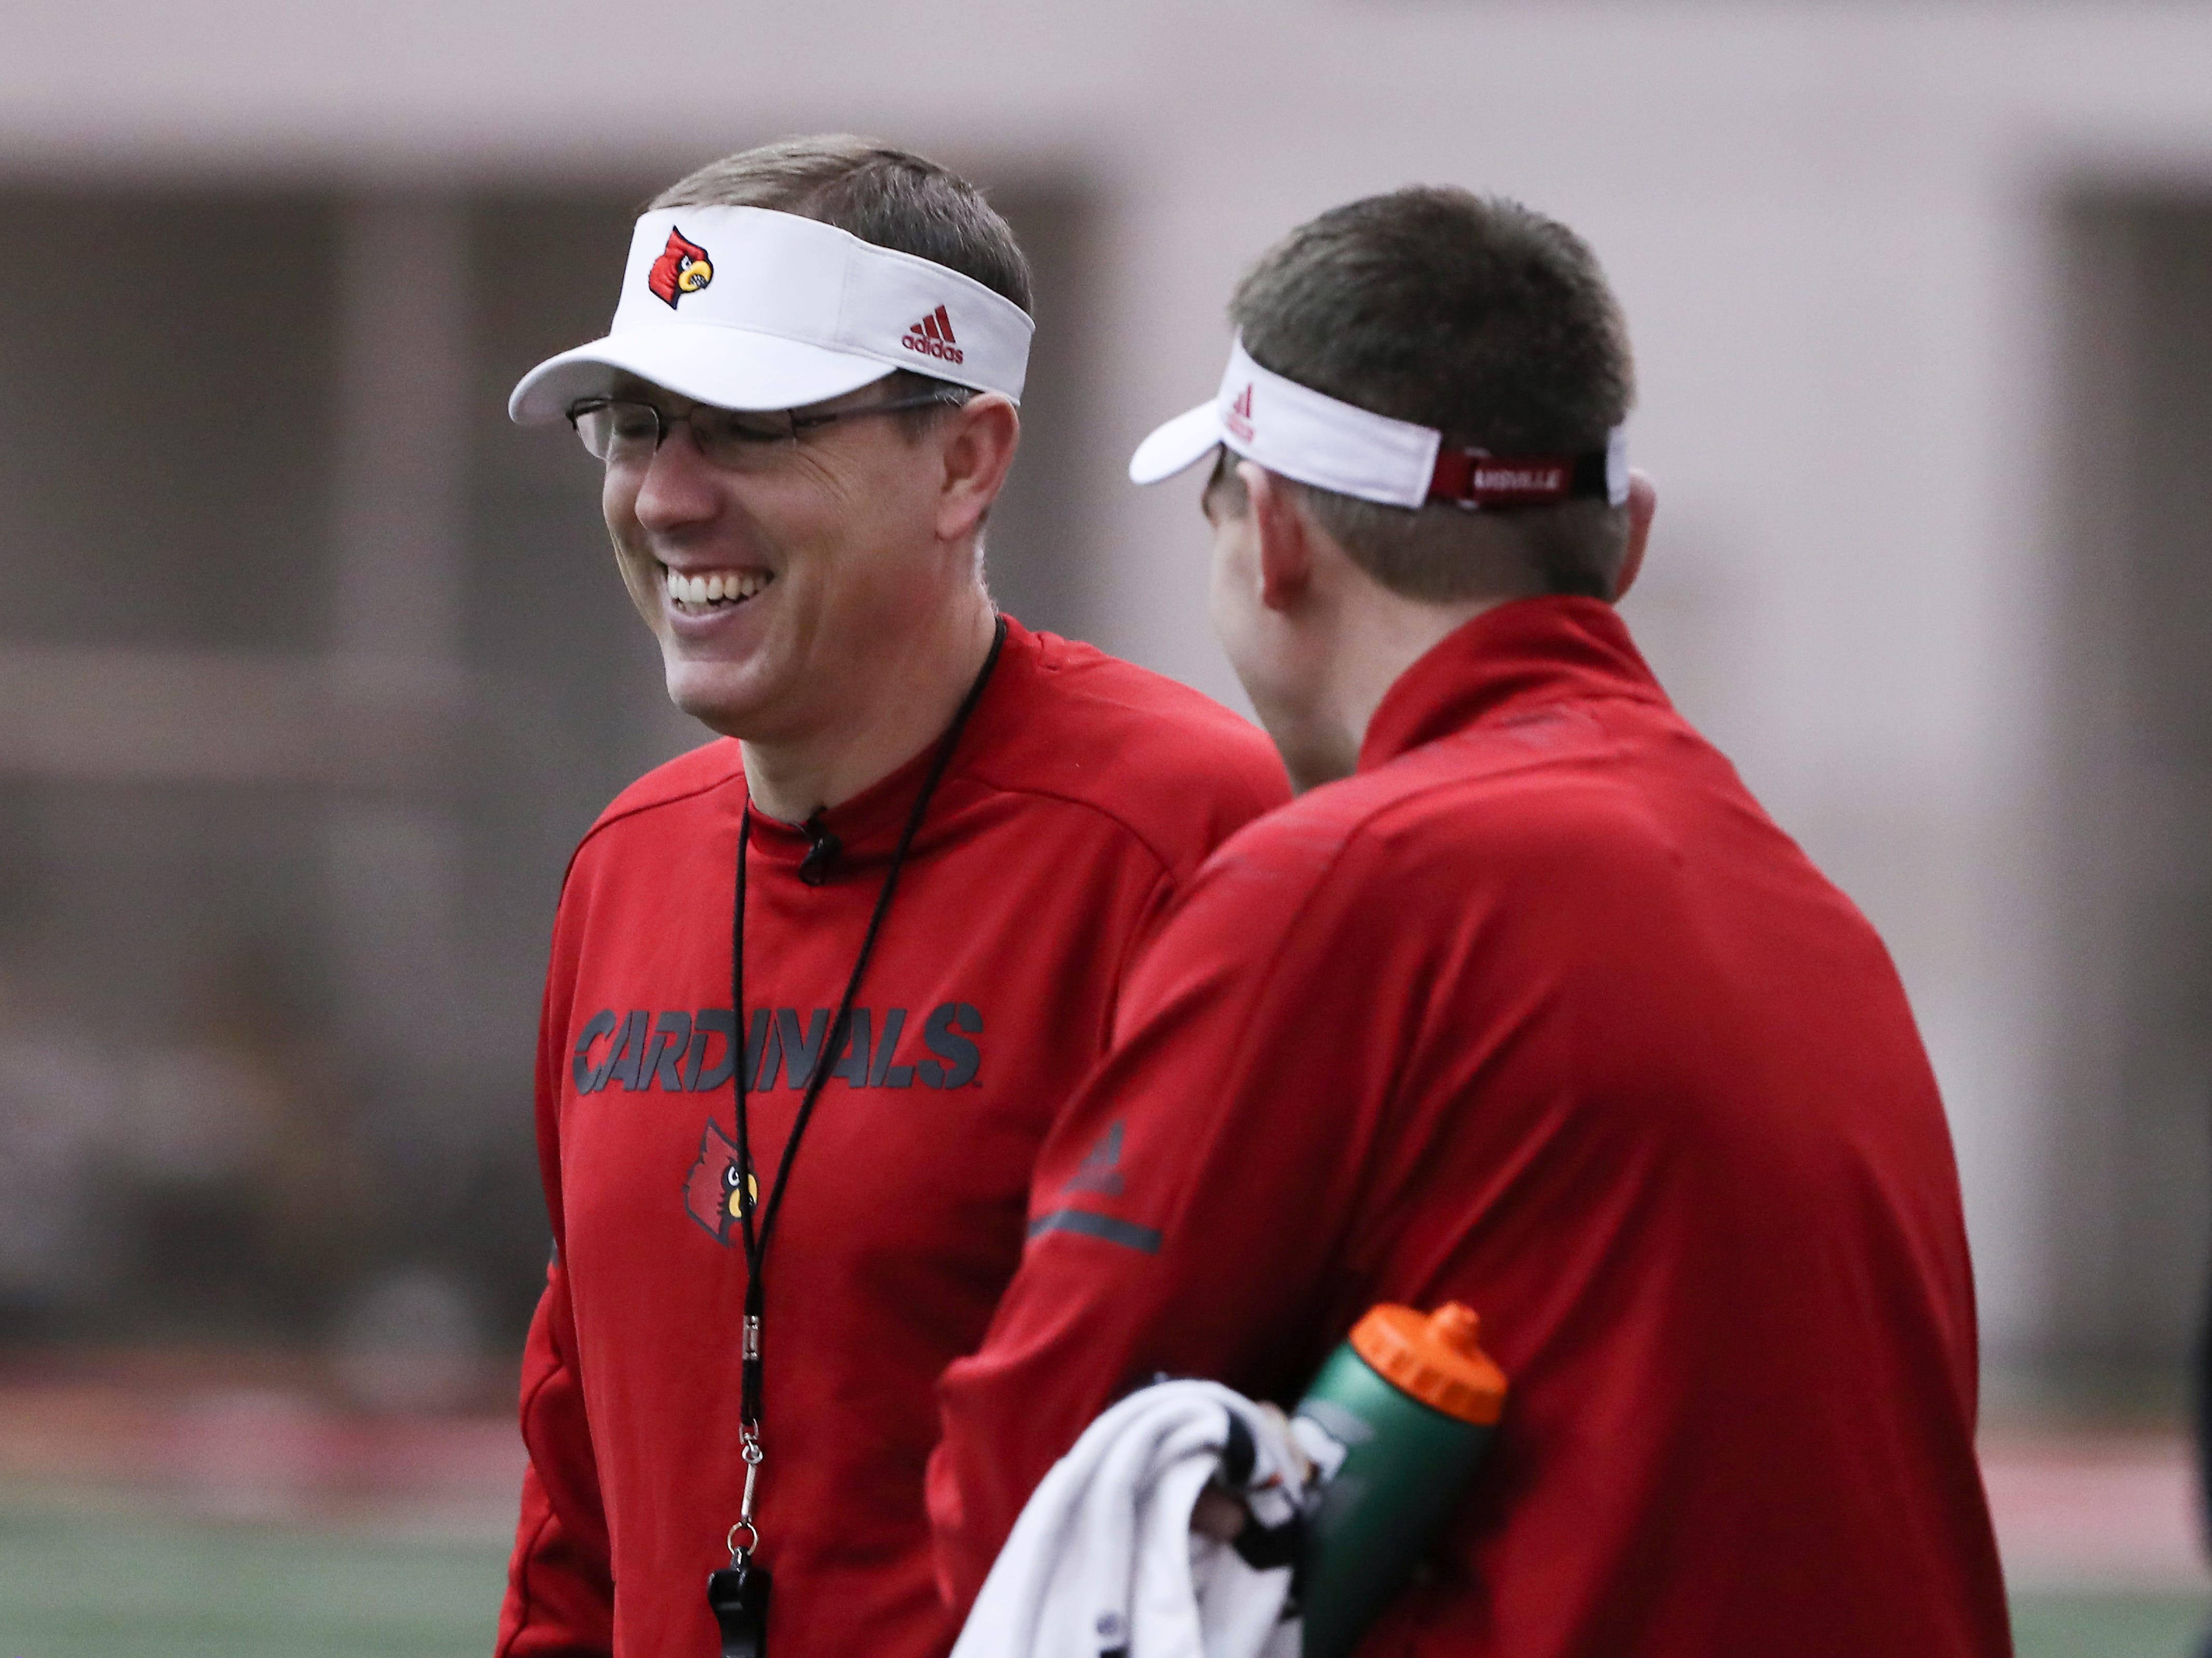 U of L head coach Scott Satterfield, left, shared a laugh with staff during practice at the Trager Center.